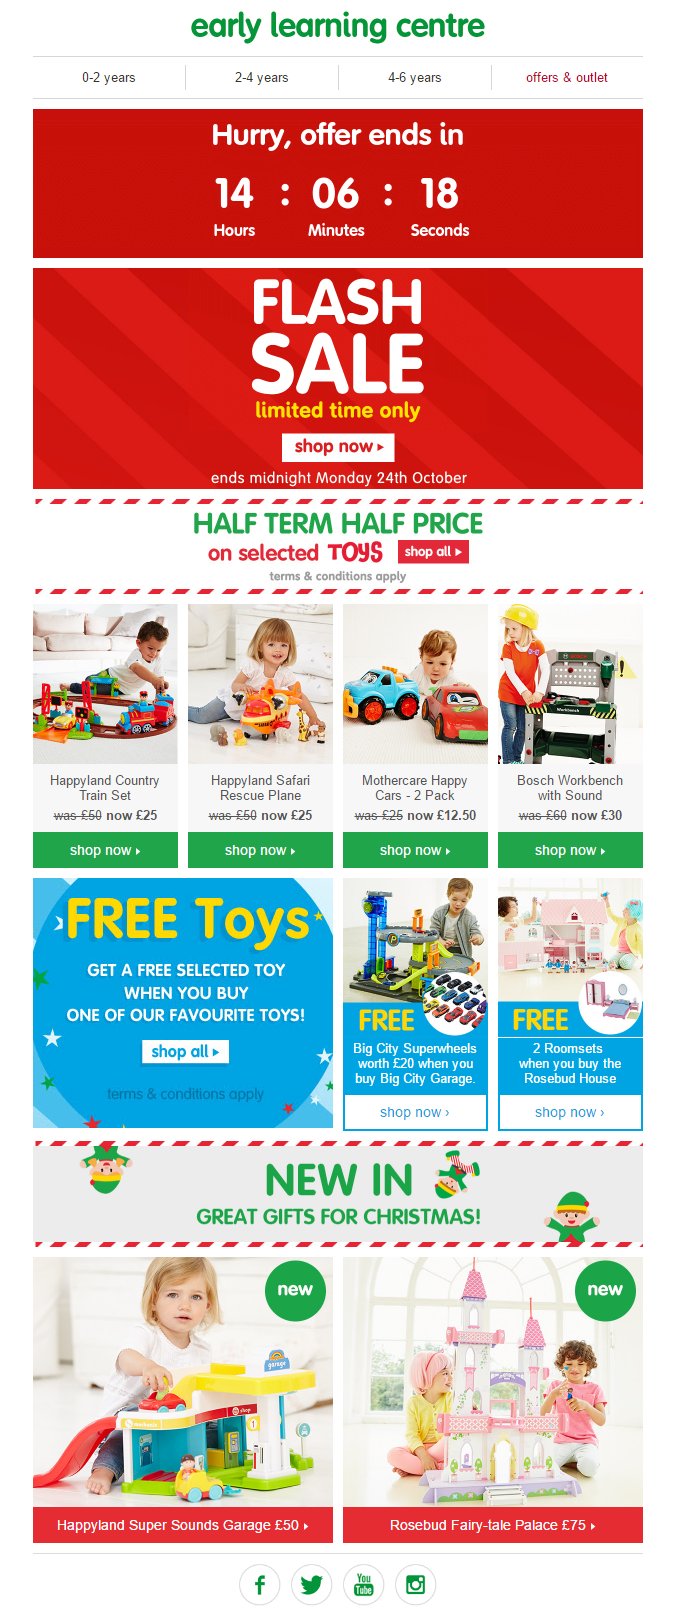 1d08f70e209 Email from early learning centre including countdown timer to end of offer